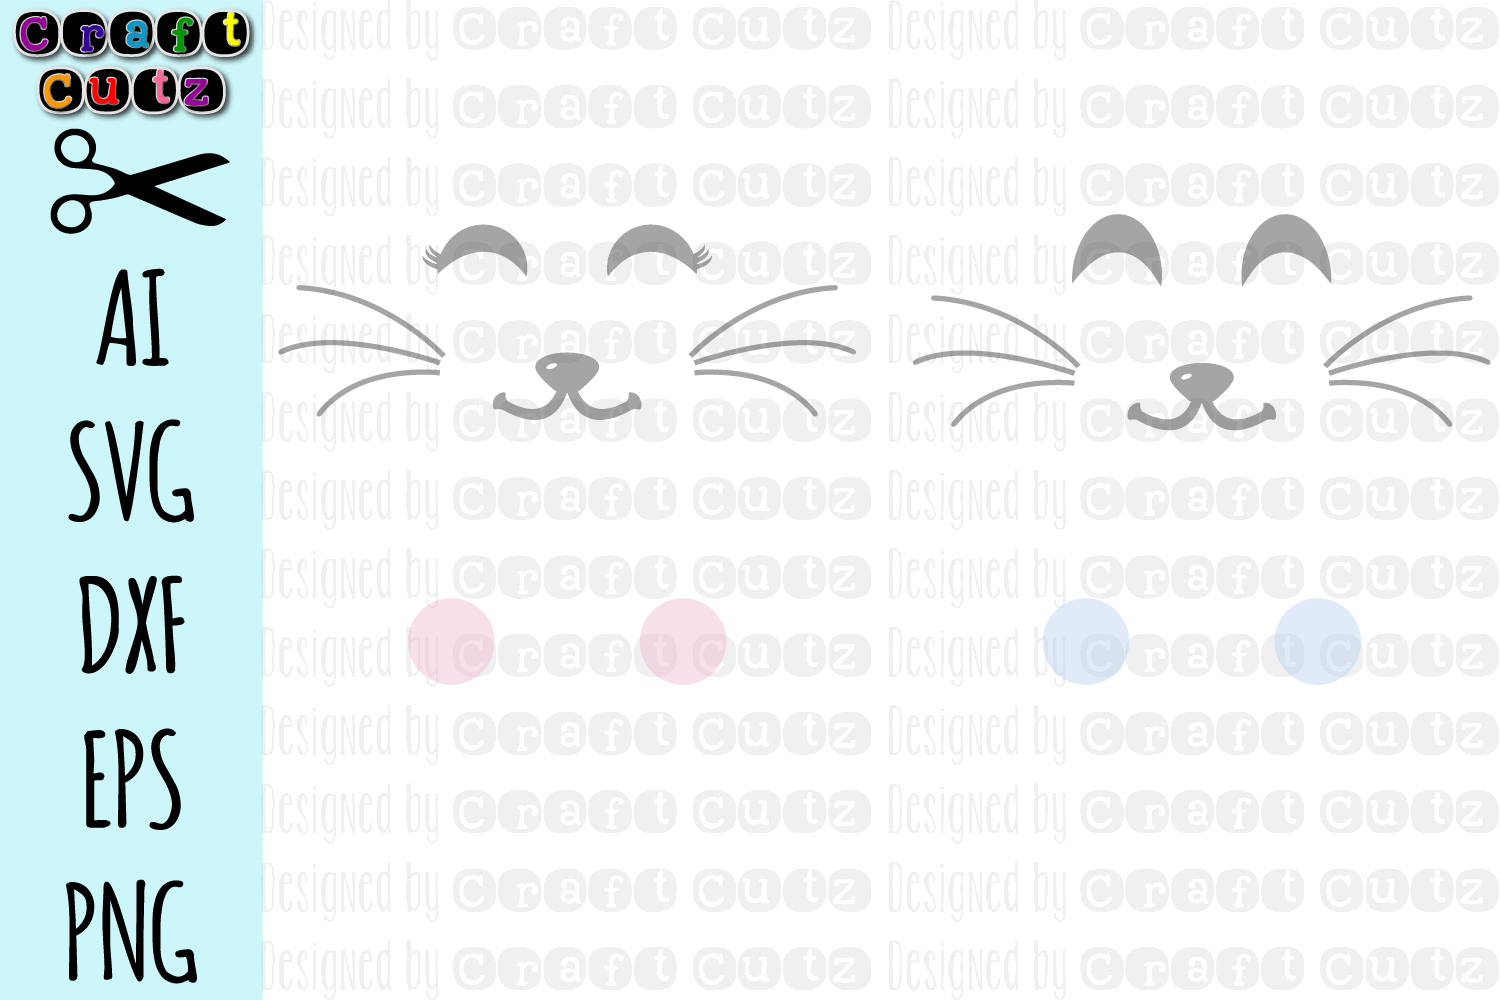 Bunny Bag svg, Cute Bunny Face svg, Rabbit Face SVG example image 1